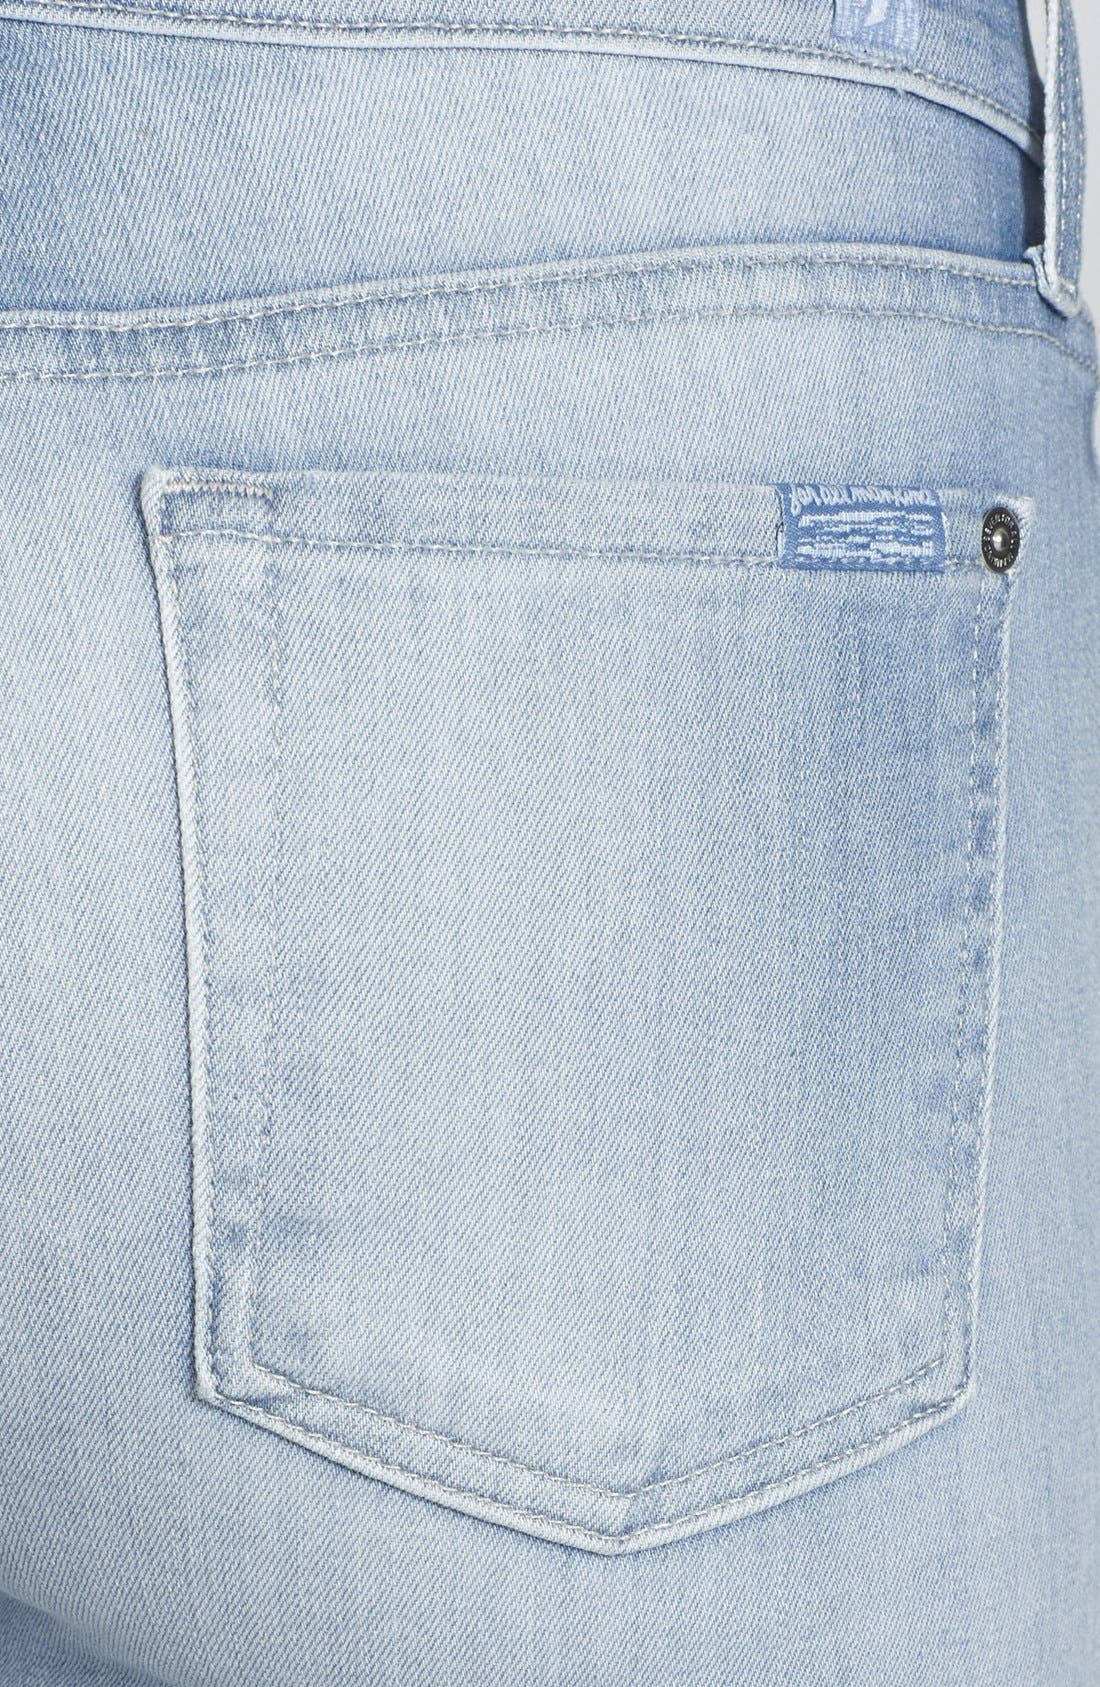 'The Skinny' Mid Rise Jeans,                             Alternate thumbnail 3, color,                             Sky Blue